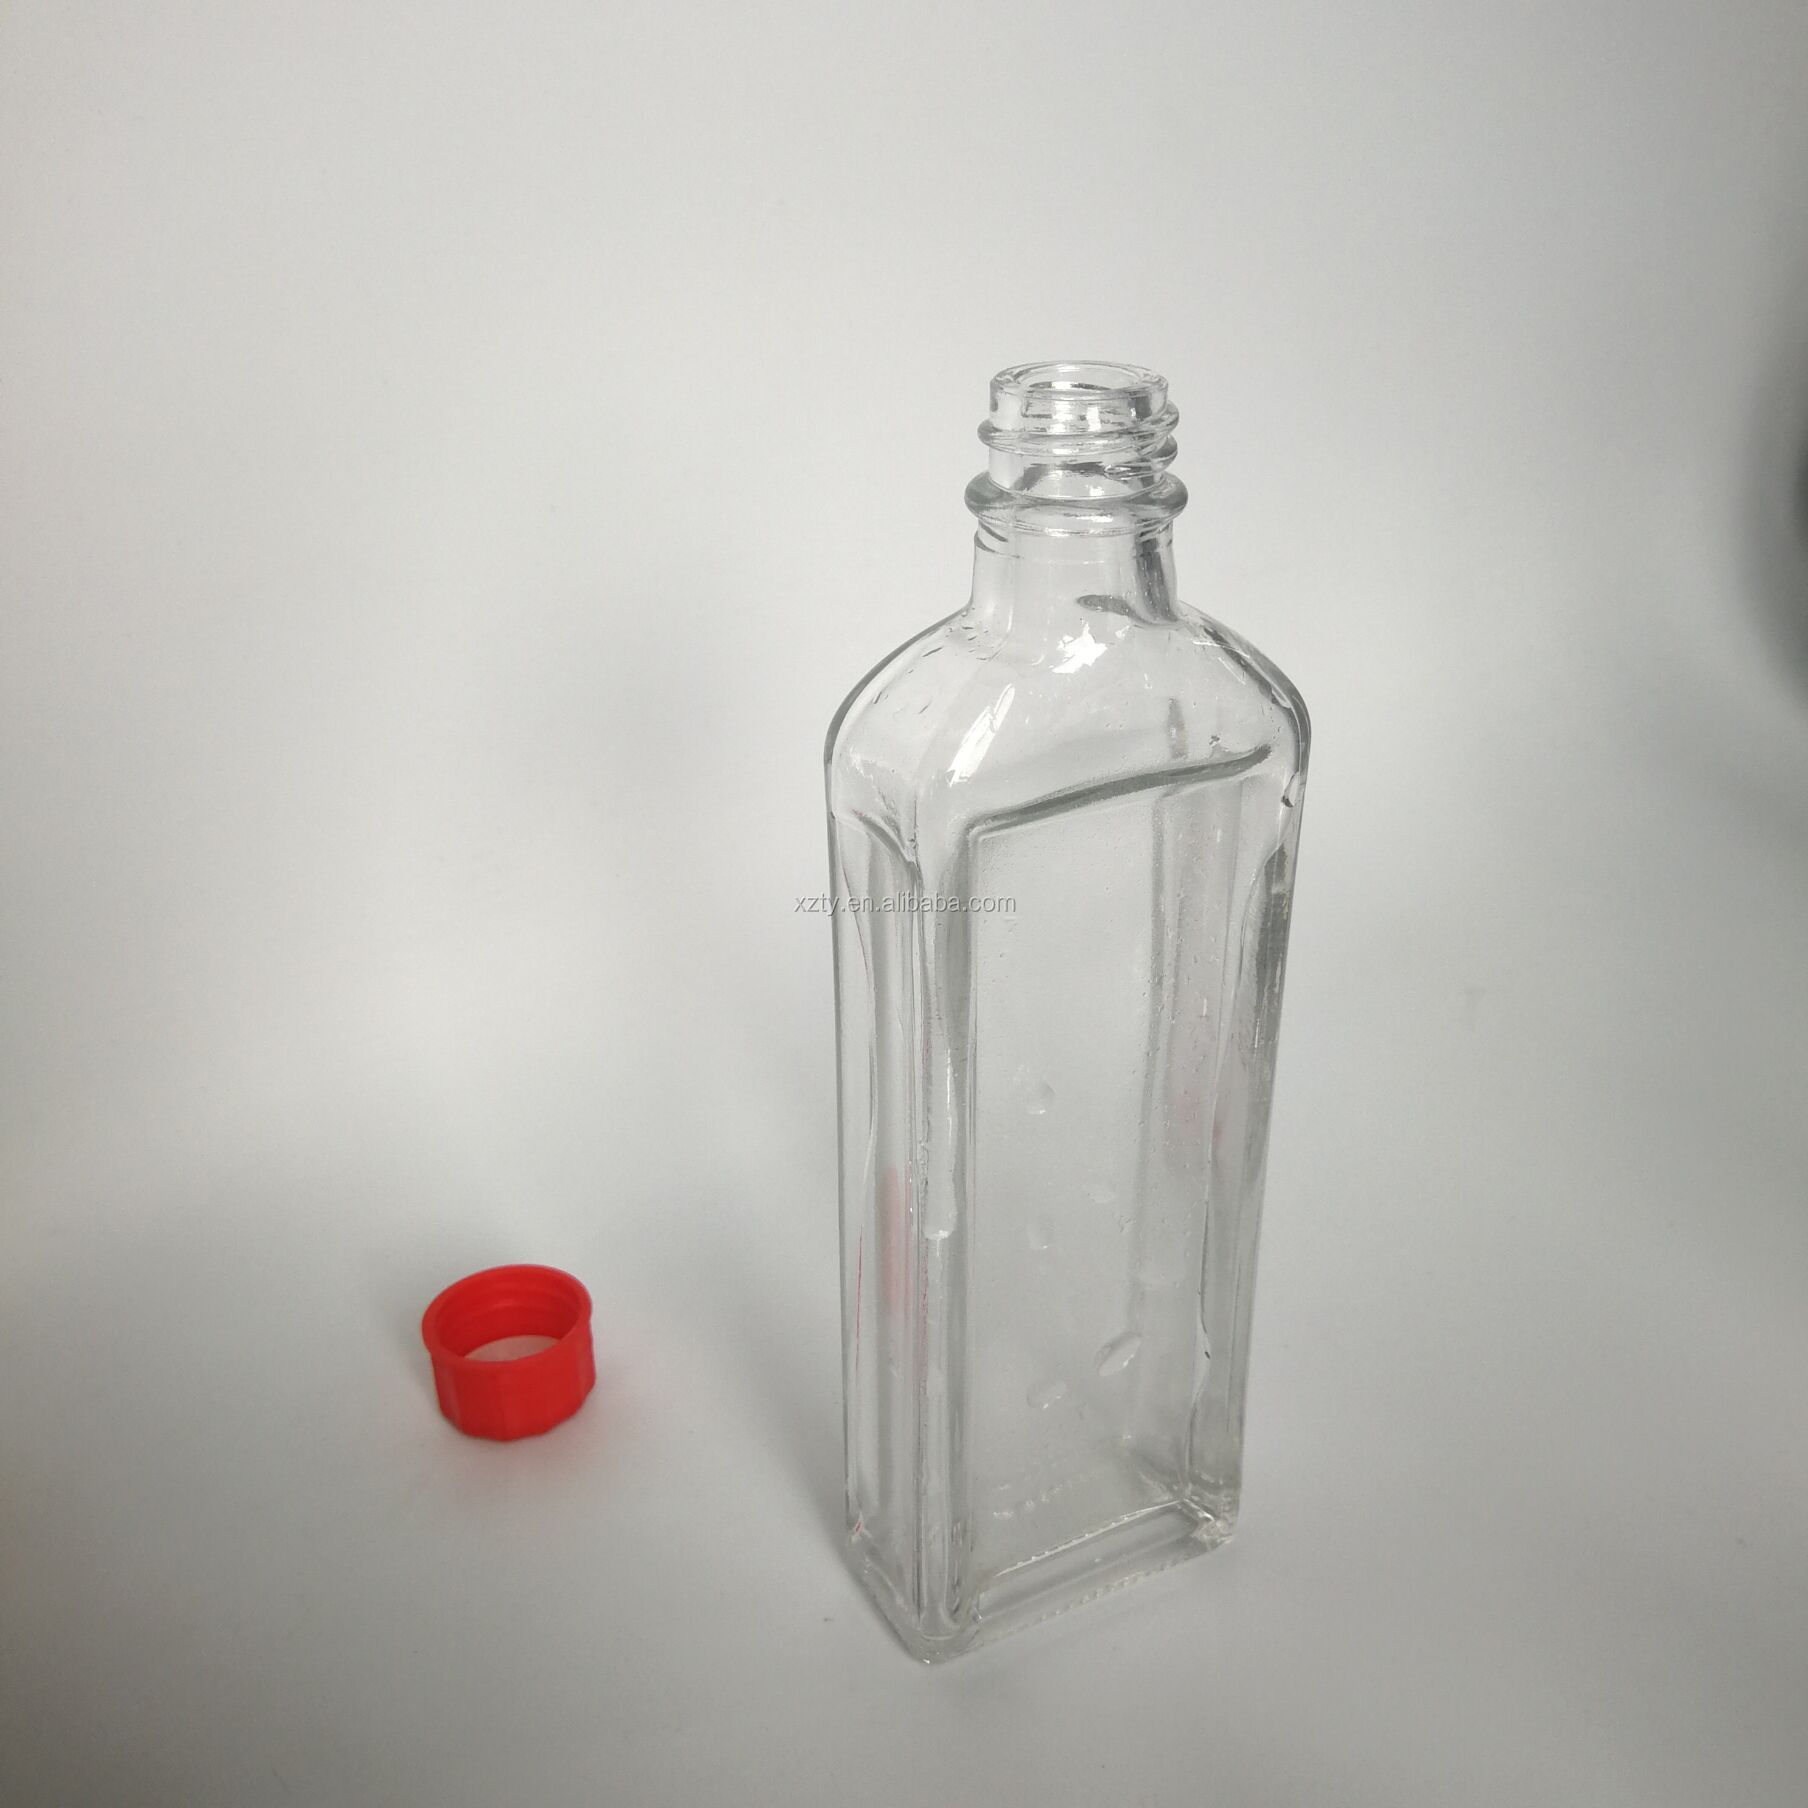 50ml safflower oil/medicated oil glass bottle with plastic lid